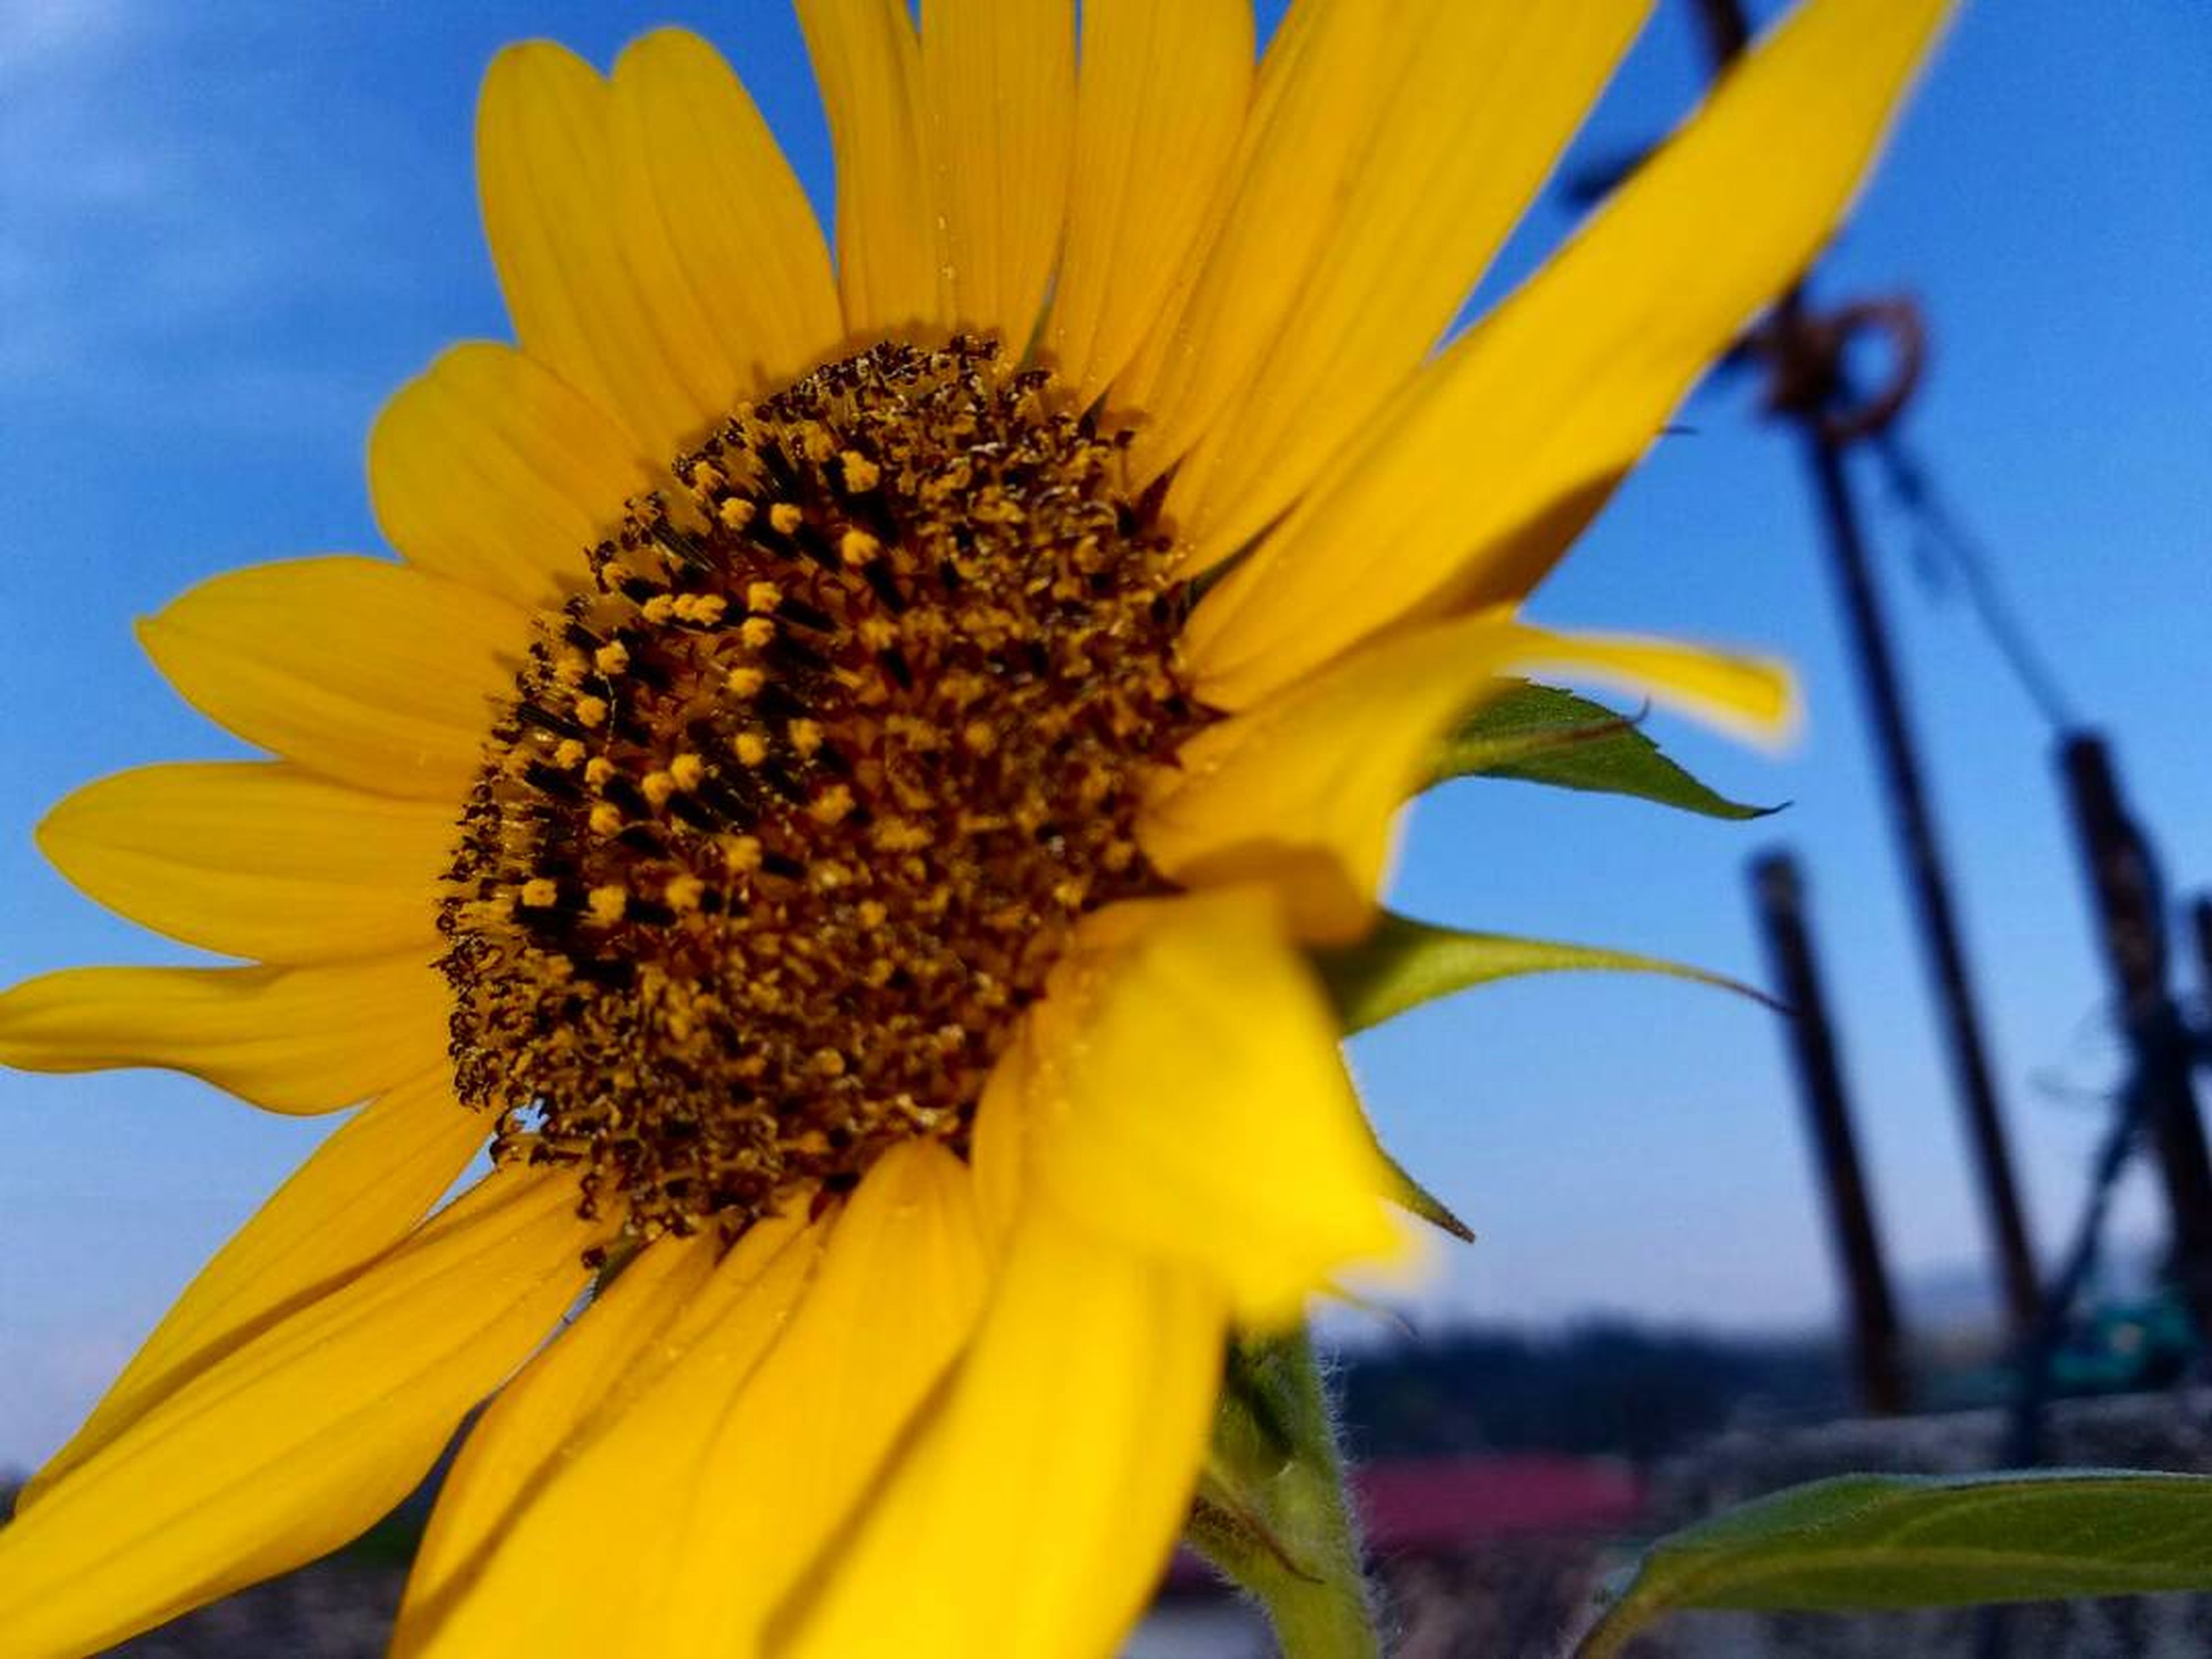 flower, petal, beauty in nature, fragility, nature, sunflower, flower head, yellow, freshness, growth, pollen, close-up, plant, blooming, sky, day, no people, outdoors, seed